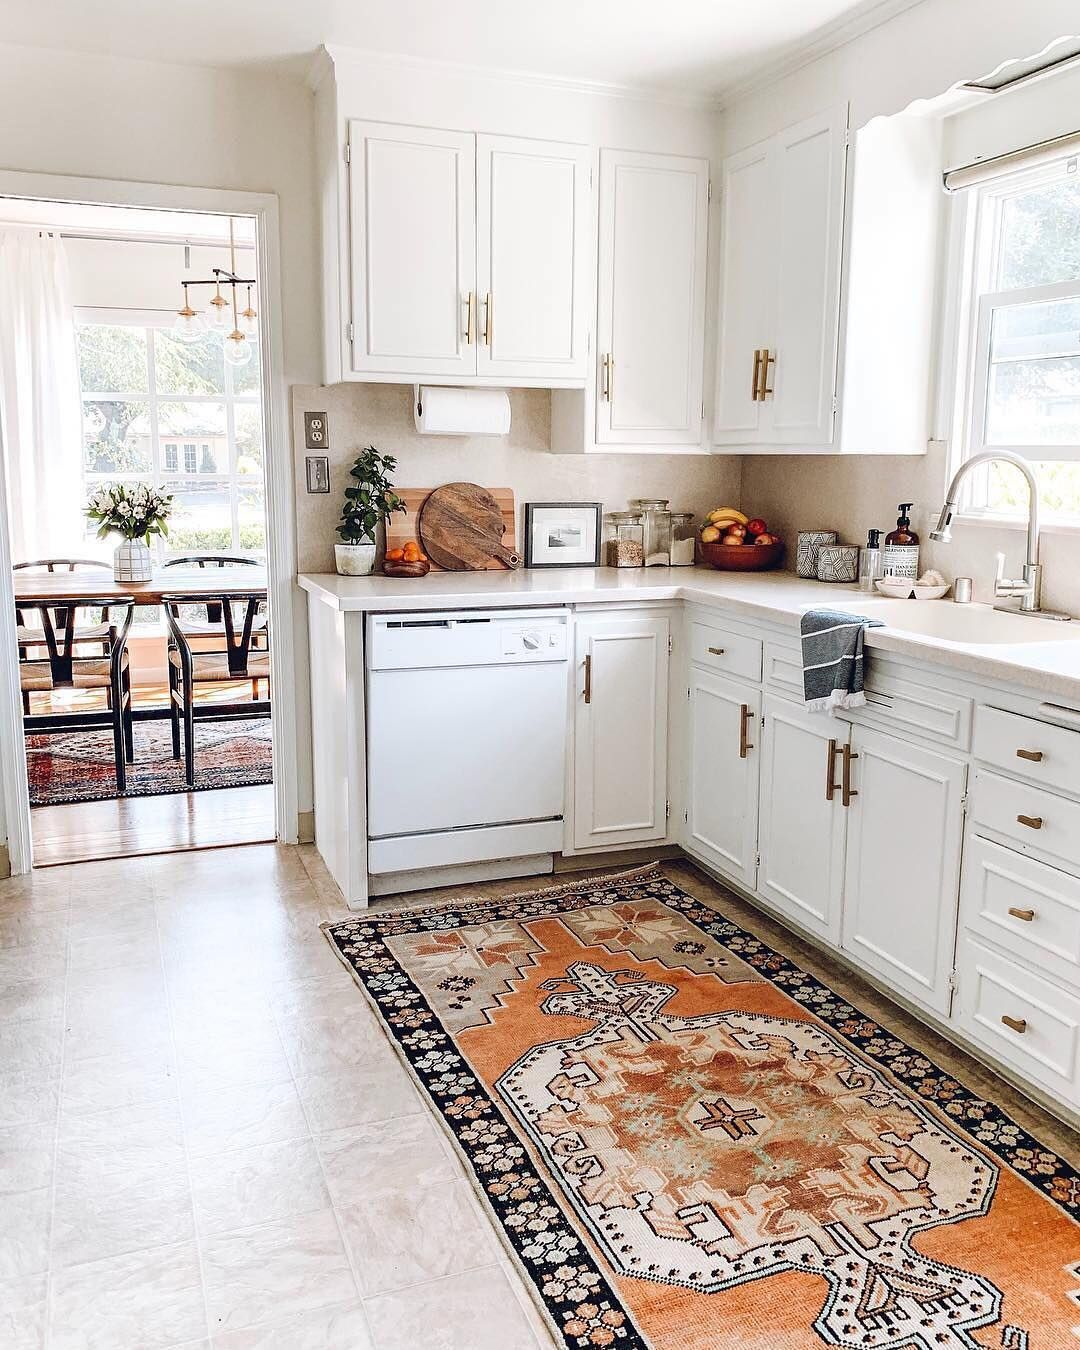 Apartment Therapy On Instagram This Kitchen Runner Tho Image Rebeccaandgenevieve Budget Home Decorating Kitchen Runner Home Remodeling